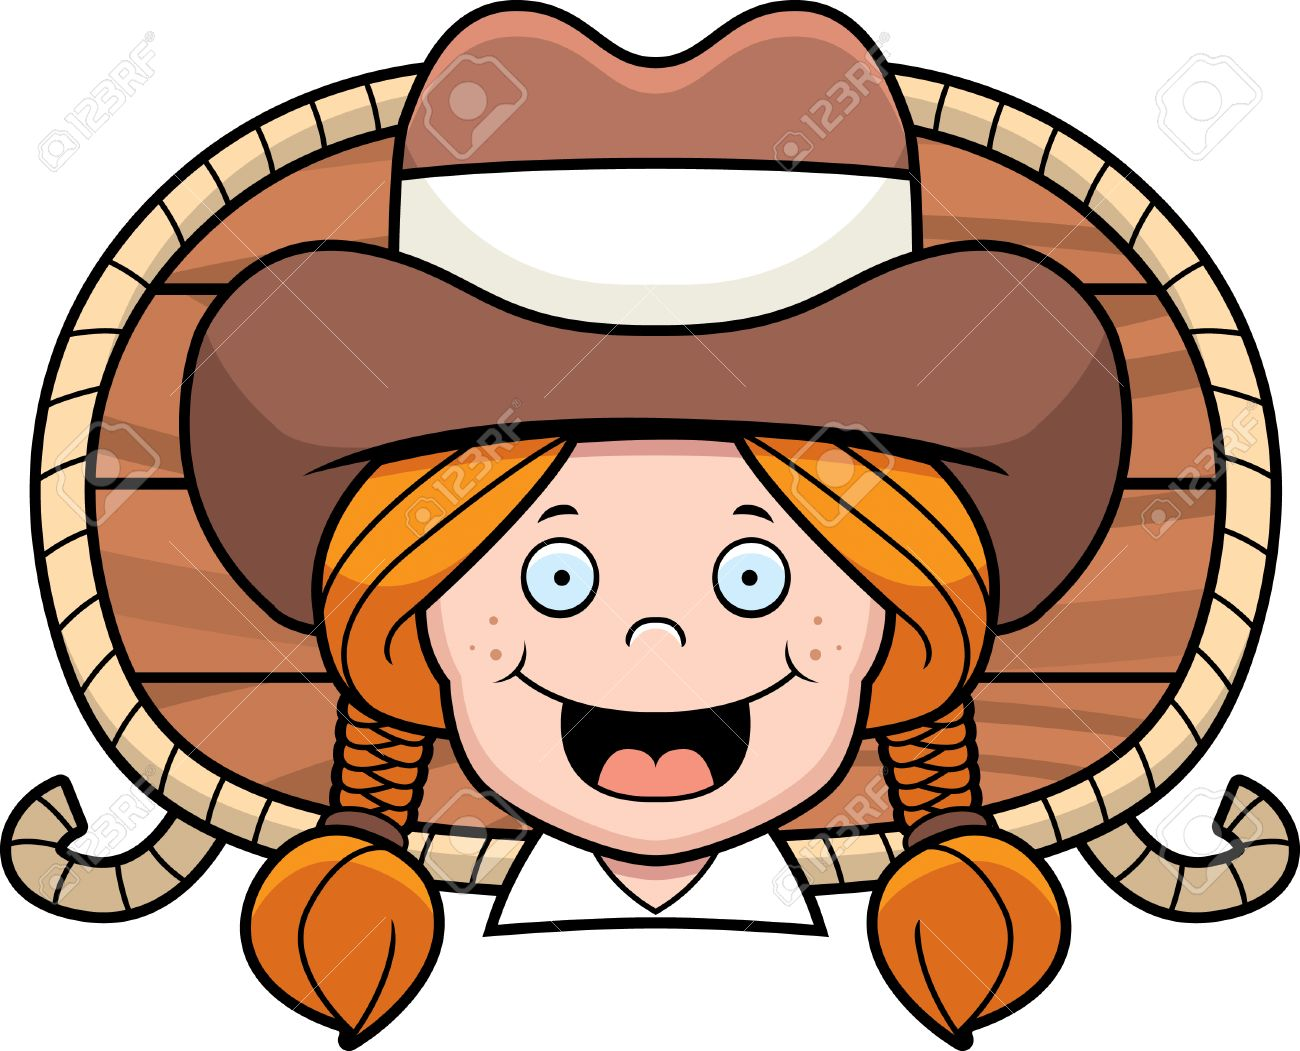 A Cartoon Redheaded Cowgirl Smiling And Happy. Royalty Free Cliparts ... cedca45b1254